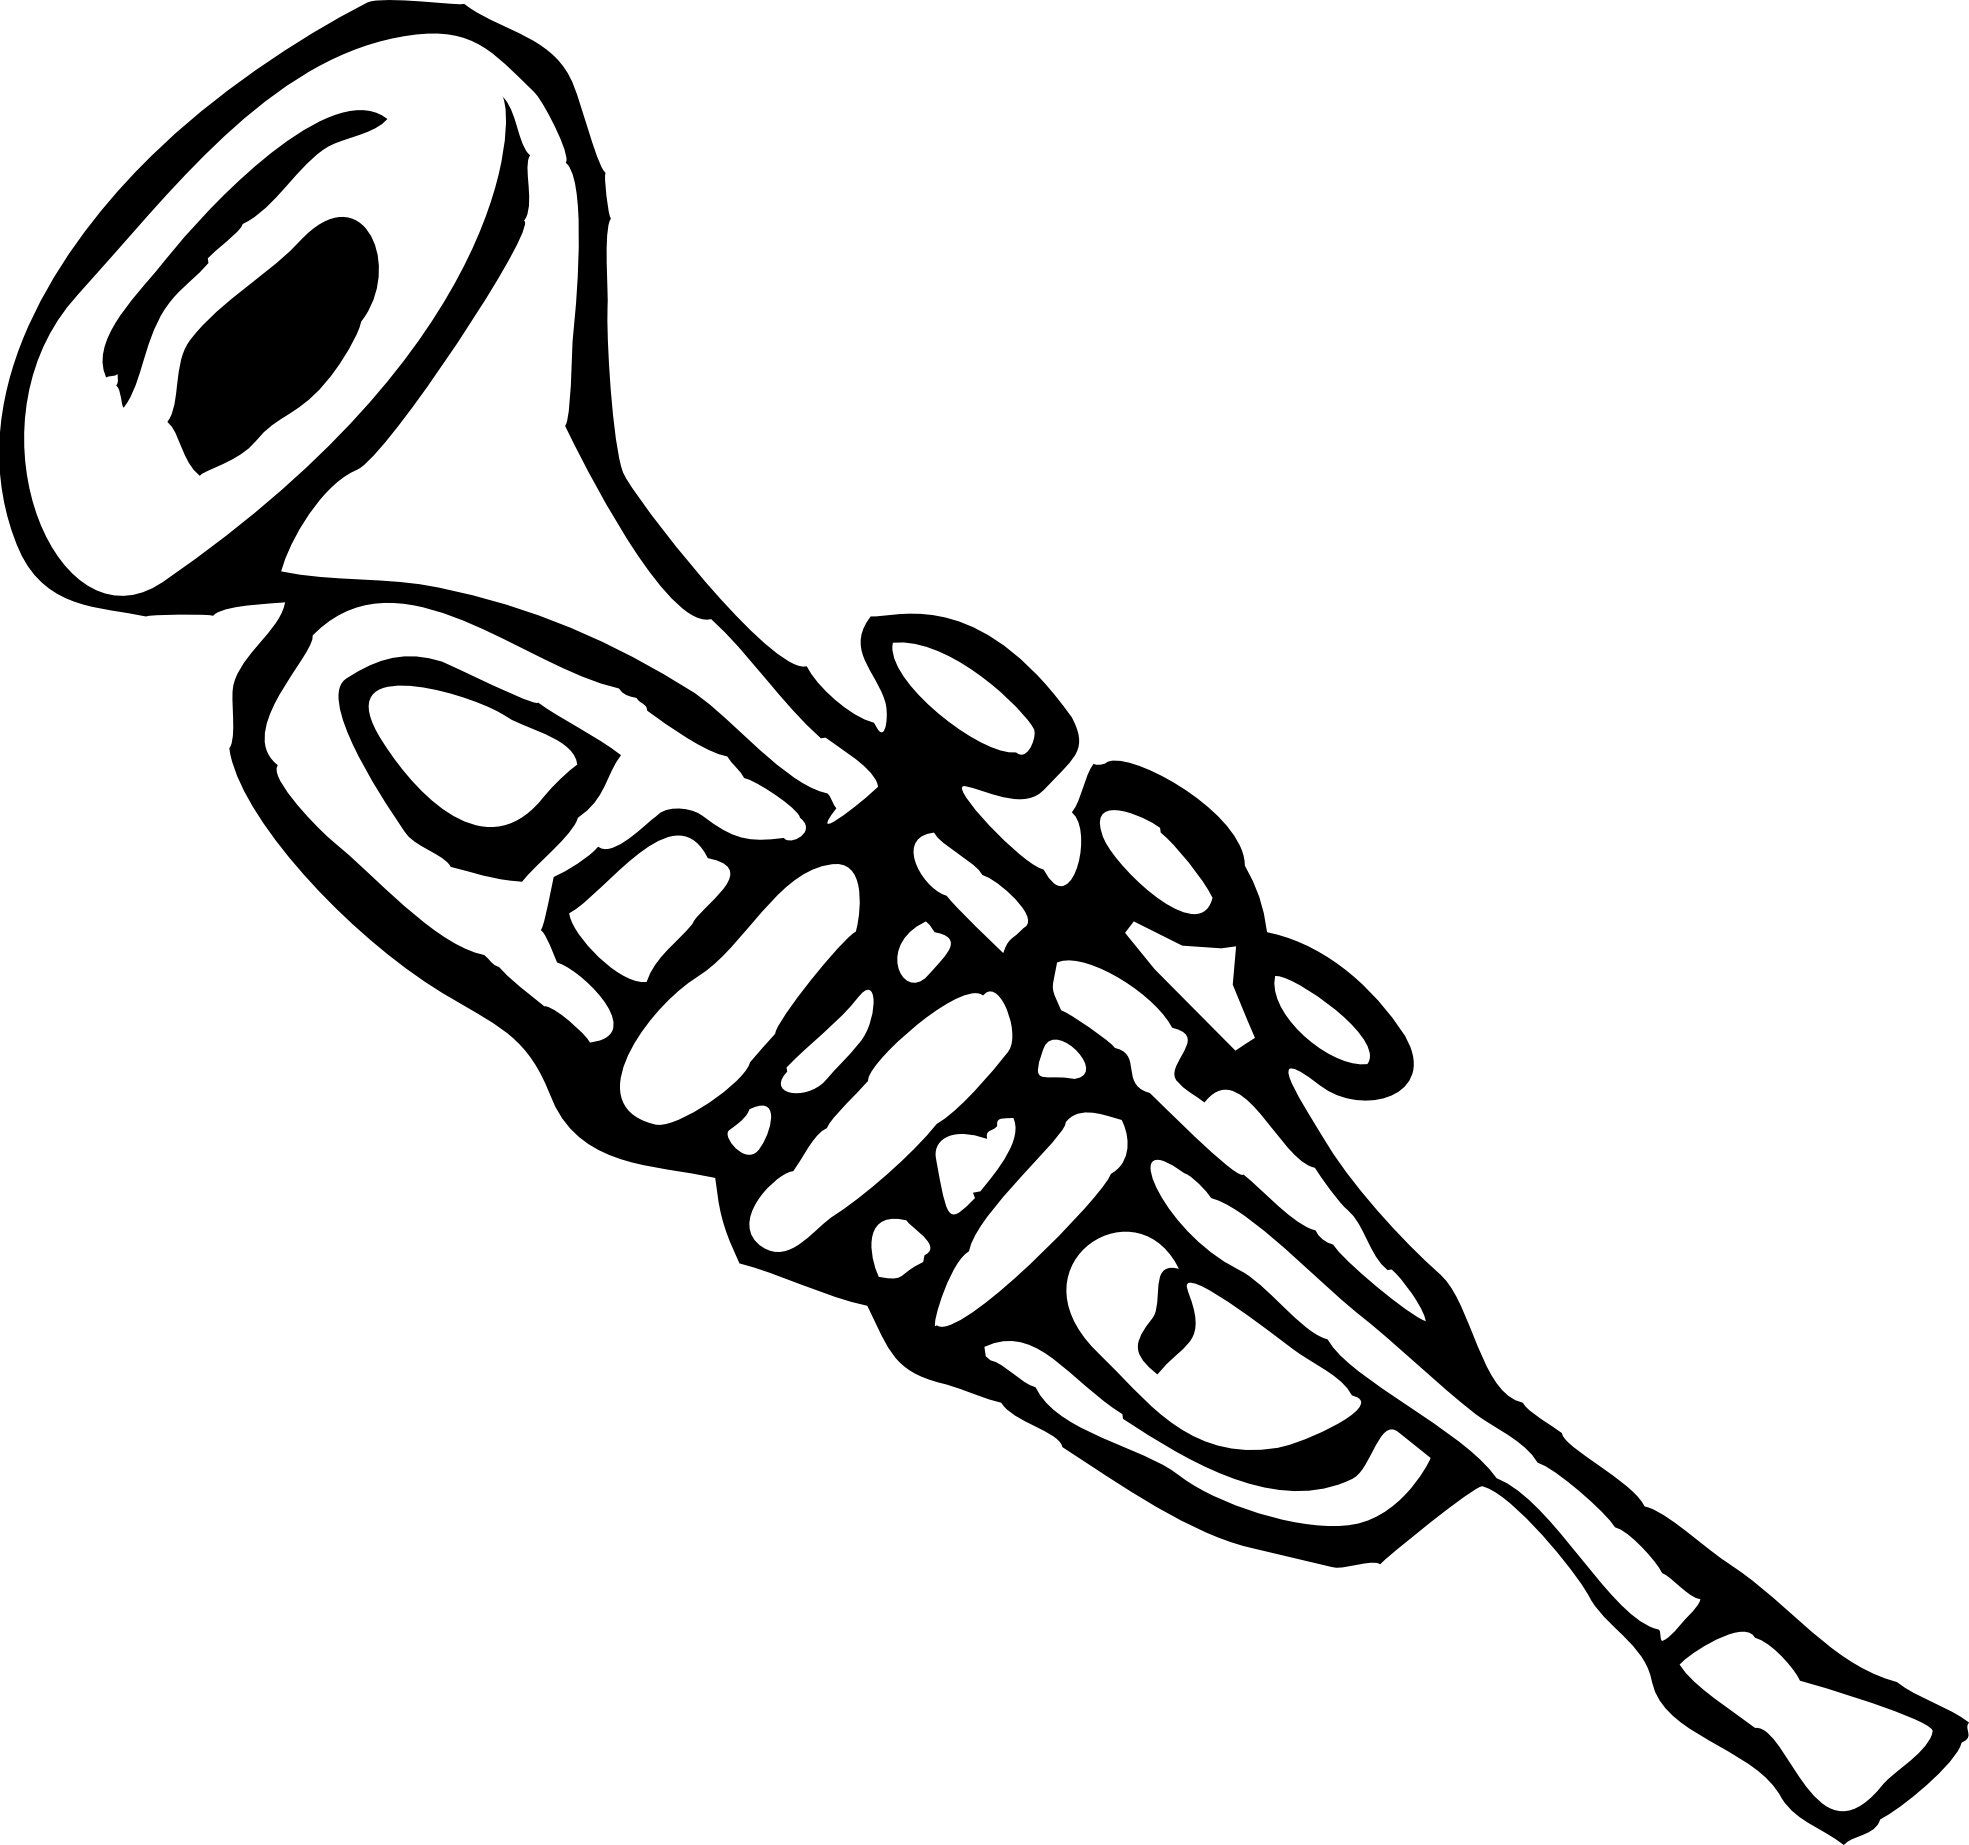 Trumpet black and white clipart clipart download Trumpet 3 Black White Line | Clipart Panda - Free Clipart Images clipart download